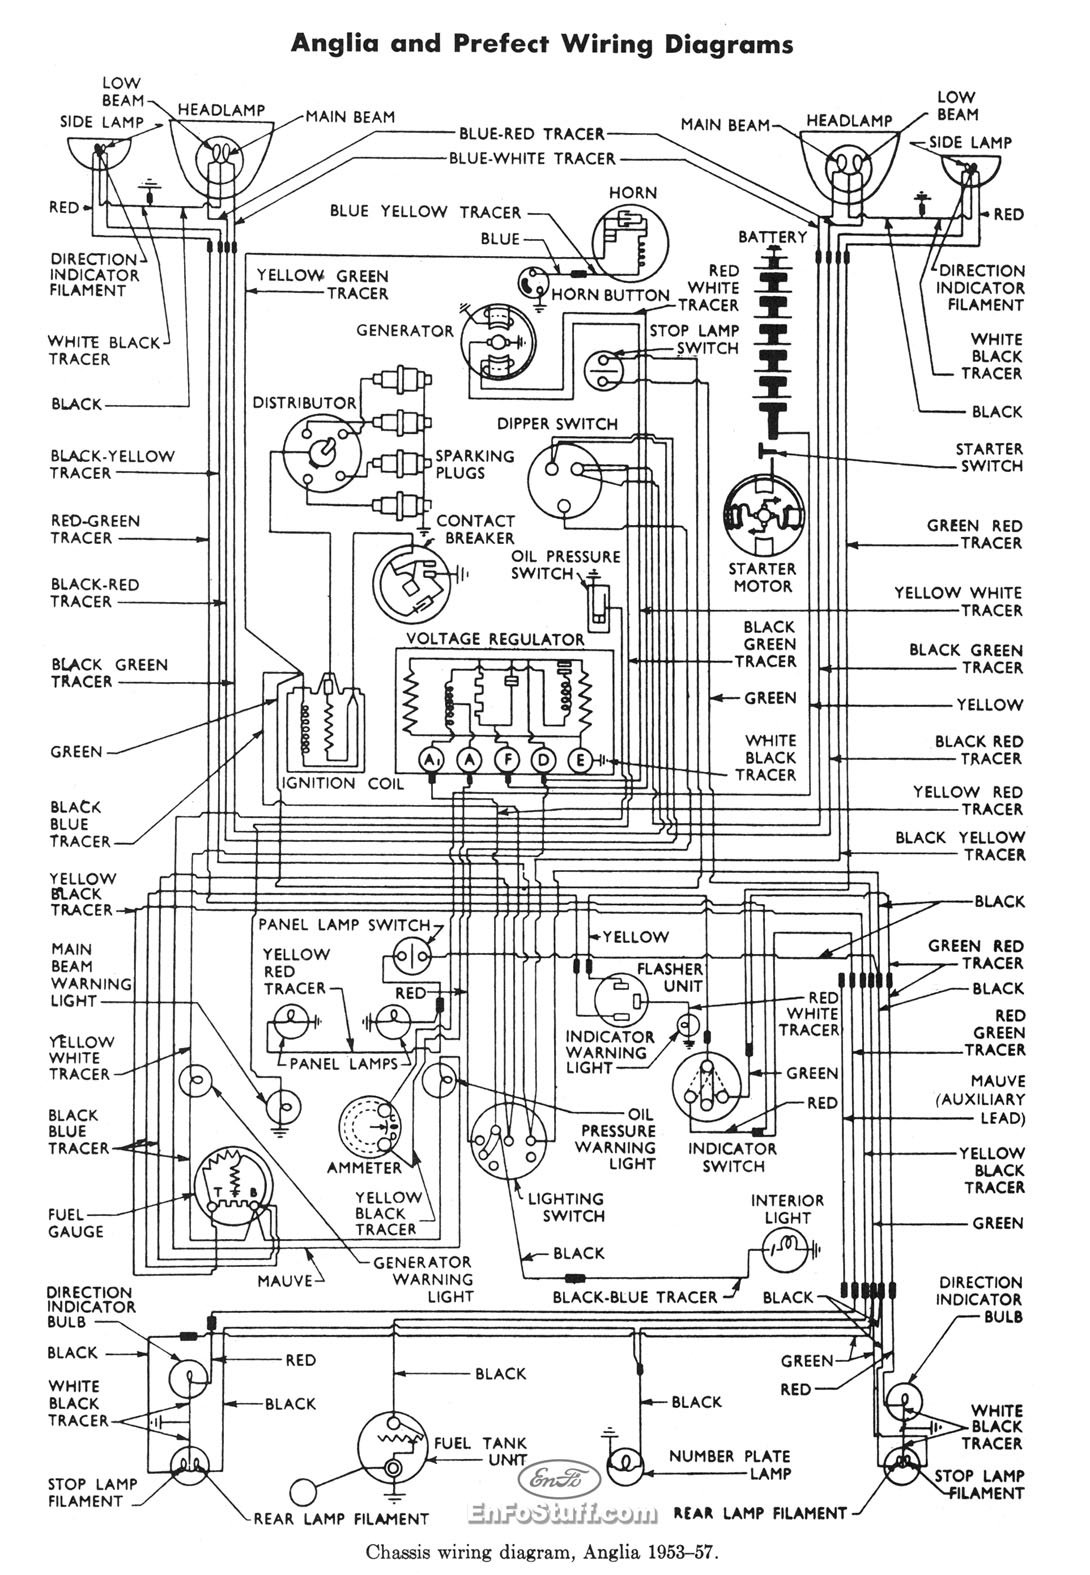 5030 ford tractor wiring diagram auto electrical wiring diagram u2022 rh 6weeks co uk